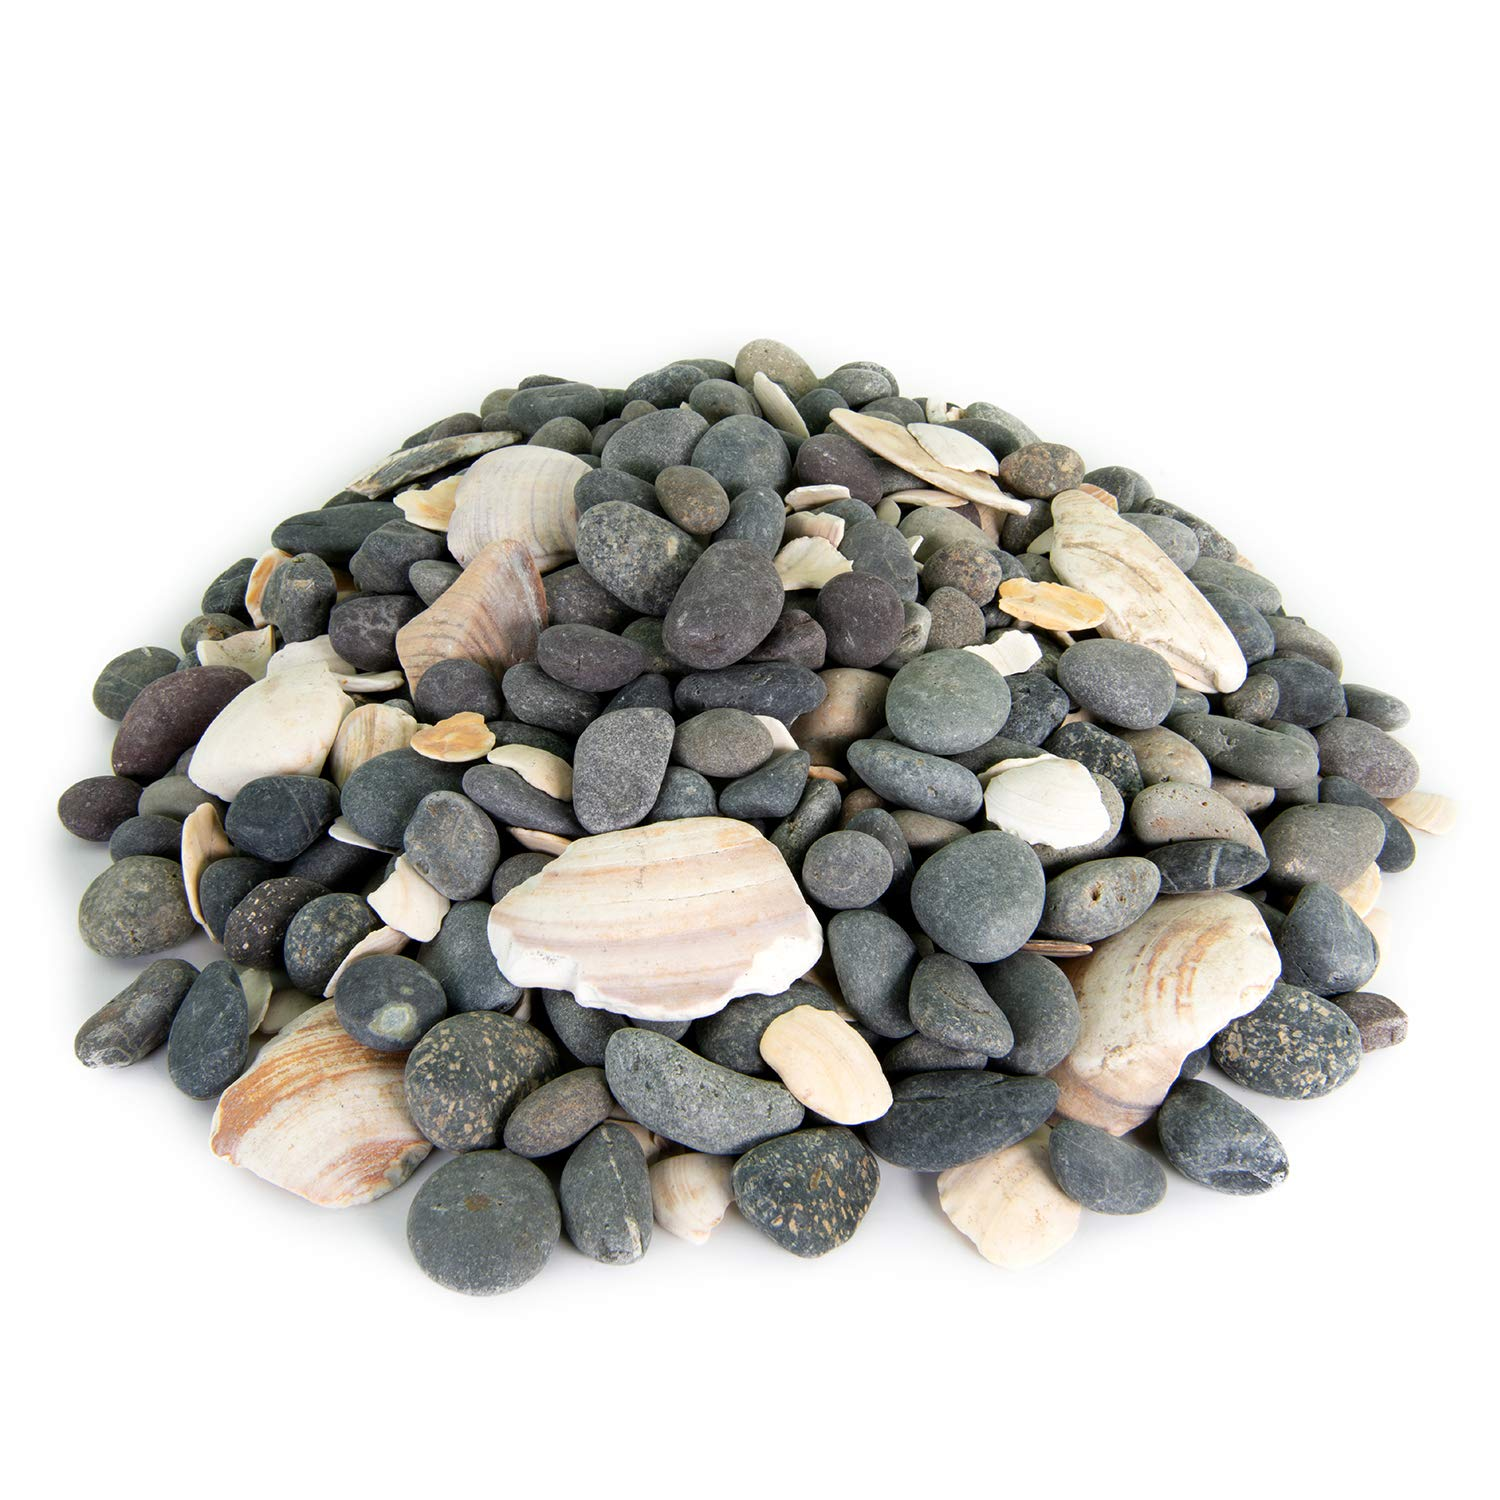 Mexican Beach Pebbles | 20 Pounds of Smooth Unpolished Stones | Hand-Picked, Premium Pebbles for Garden and Landscape Design | San Quintín, 5/8 Inch - 7/8 Inch